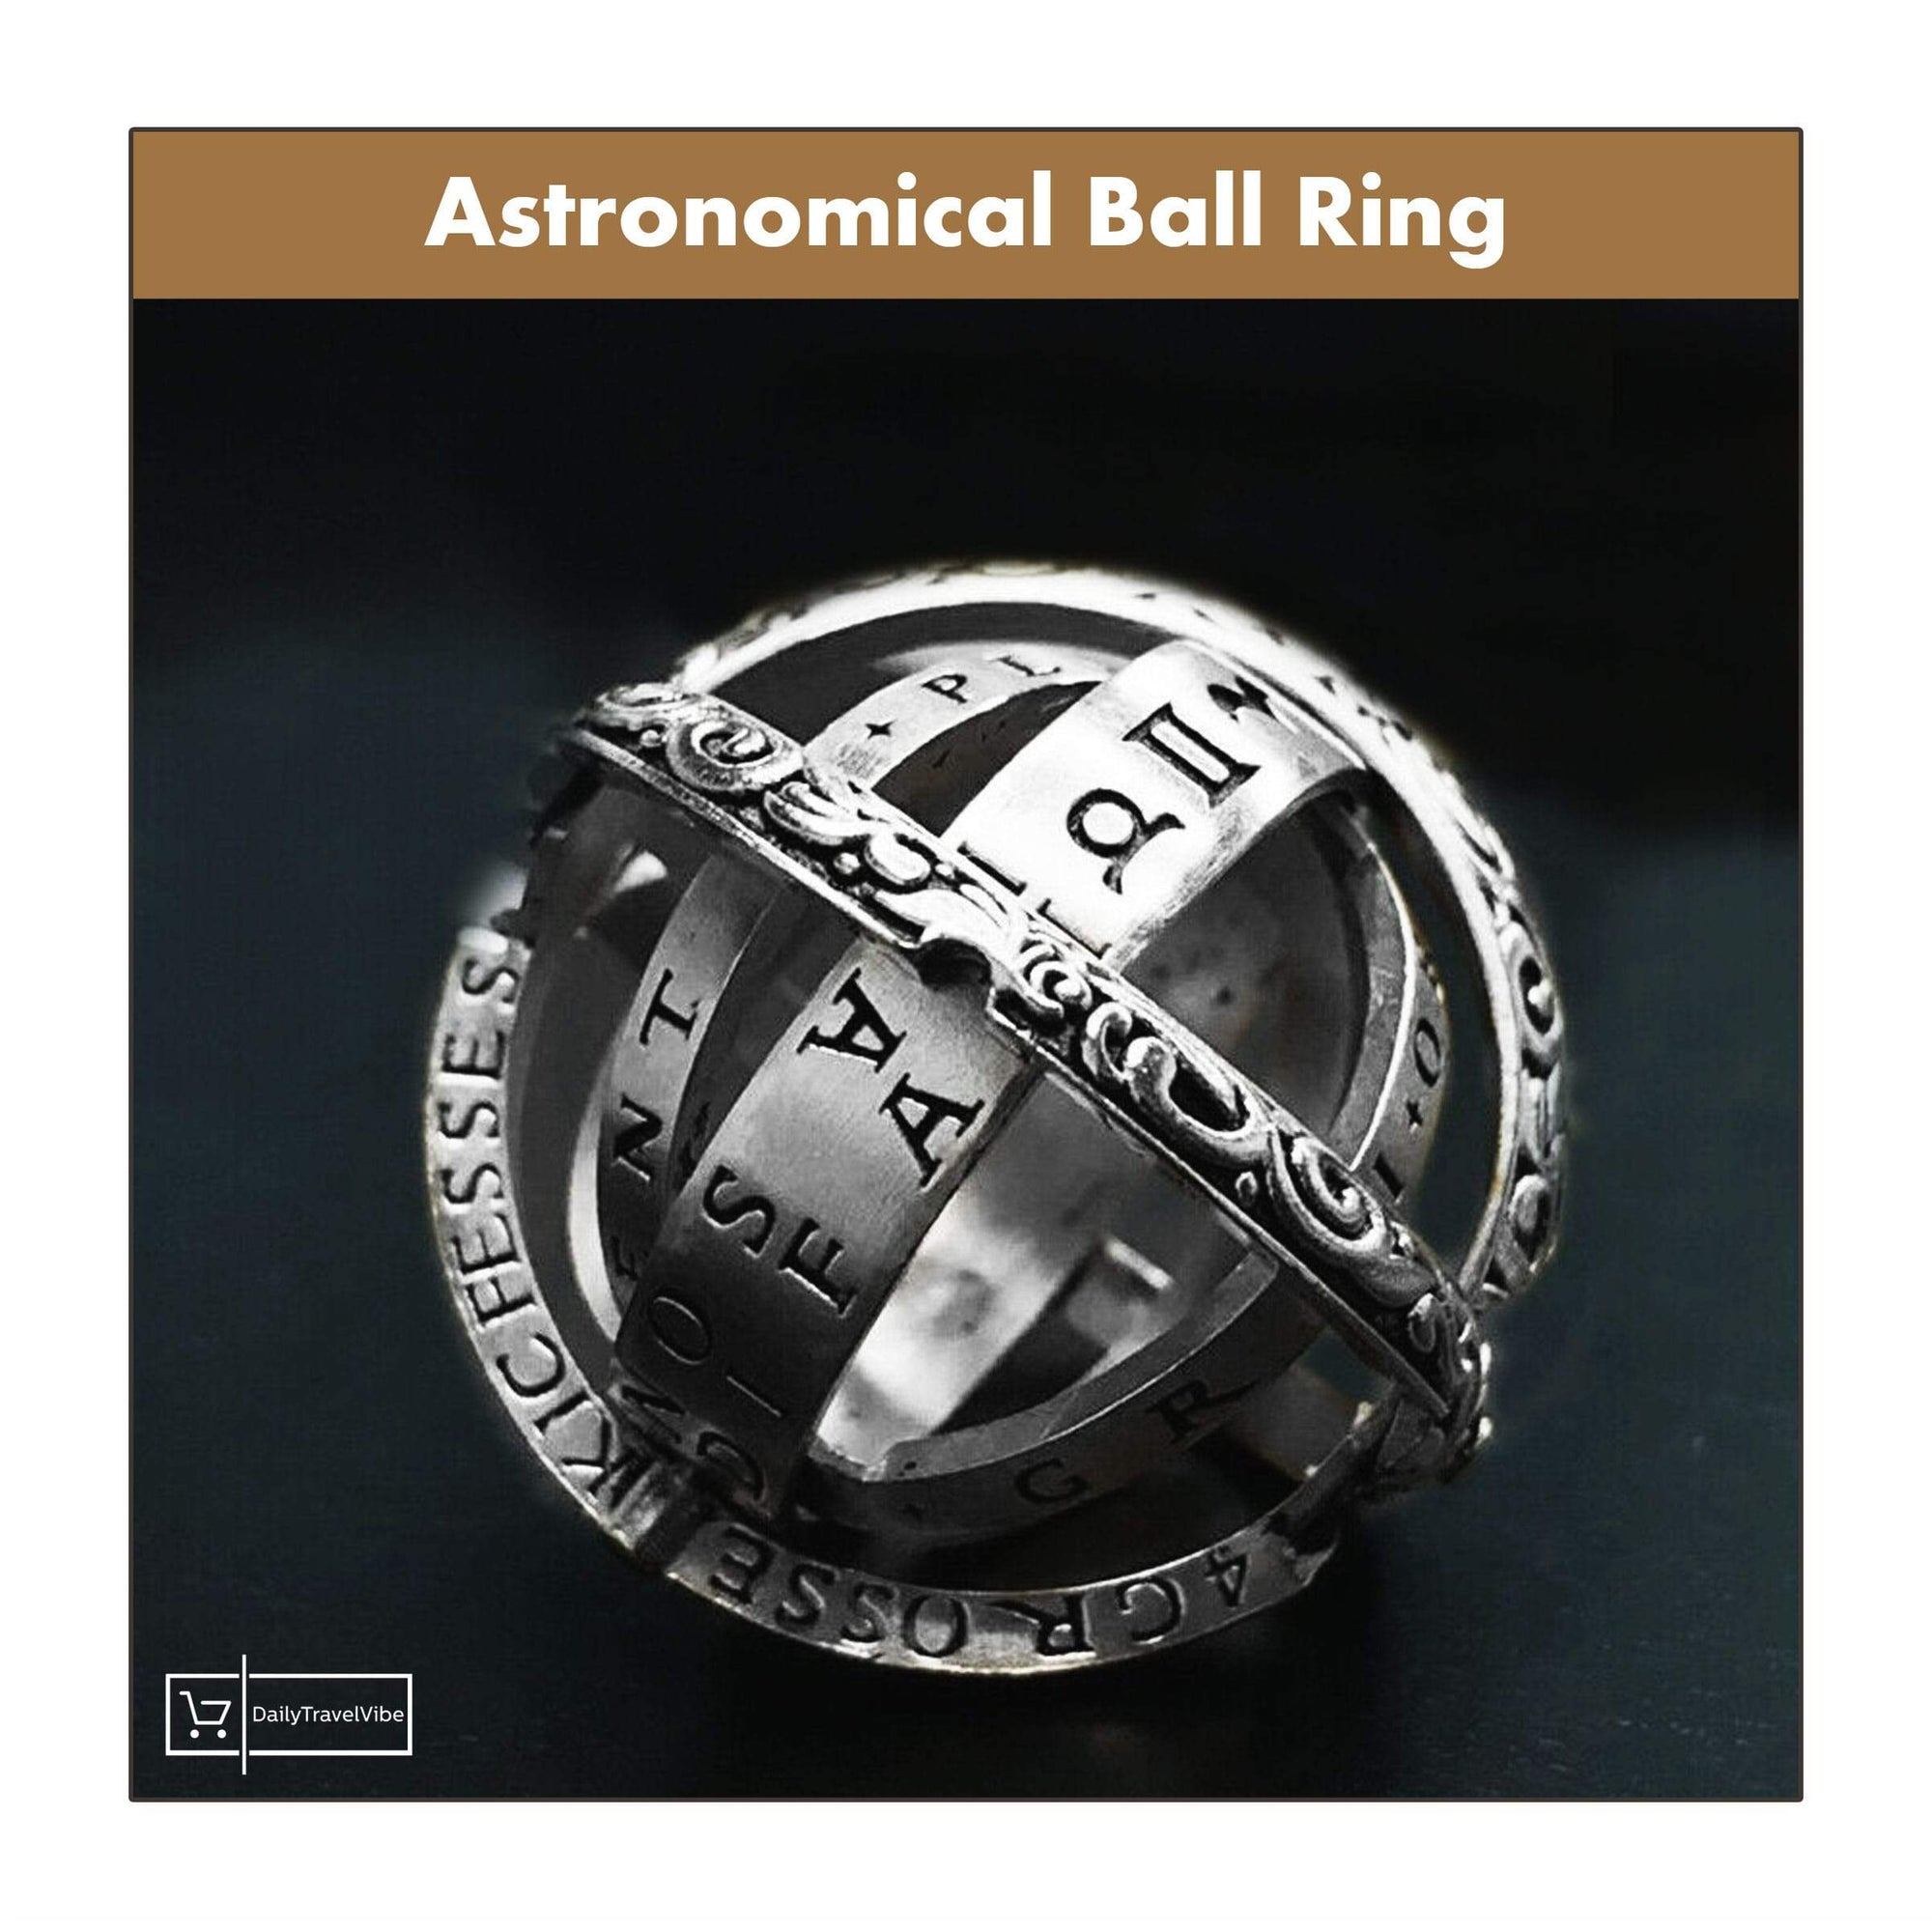 Astronomical Ball Ring - dailytravelvibe